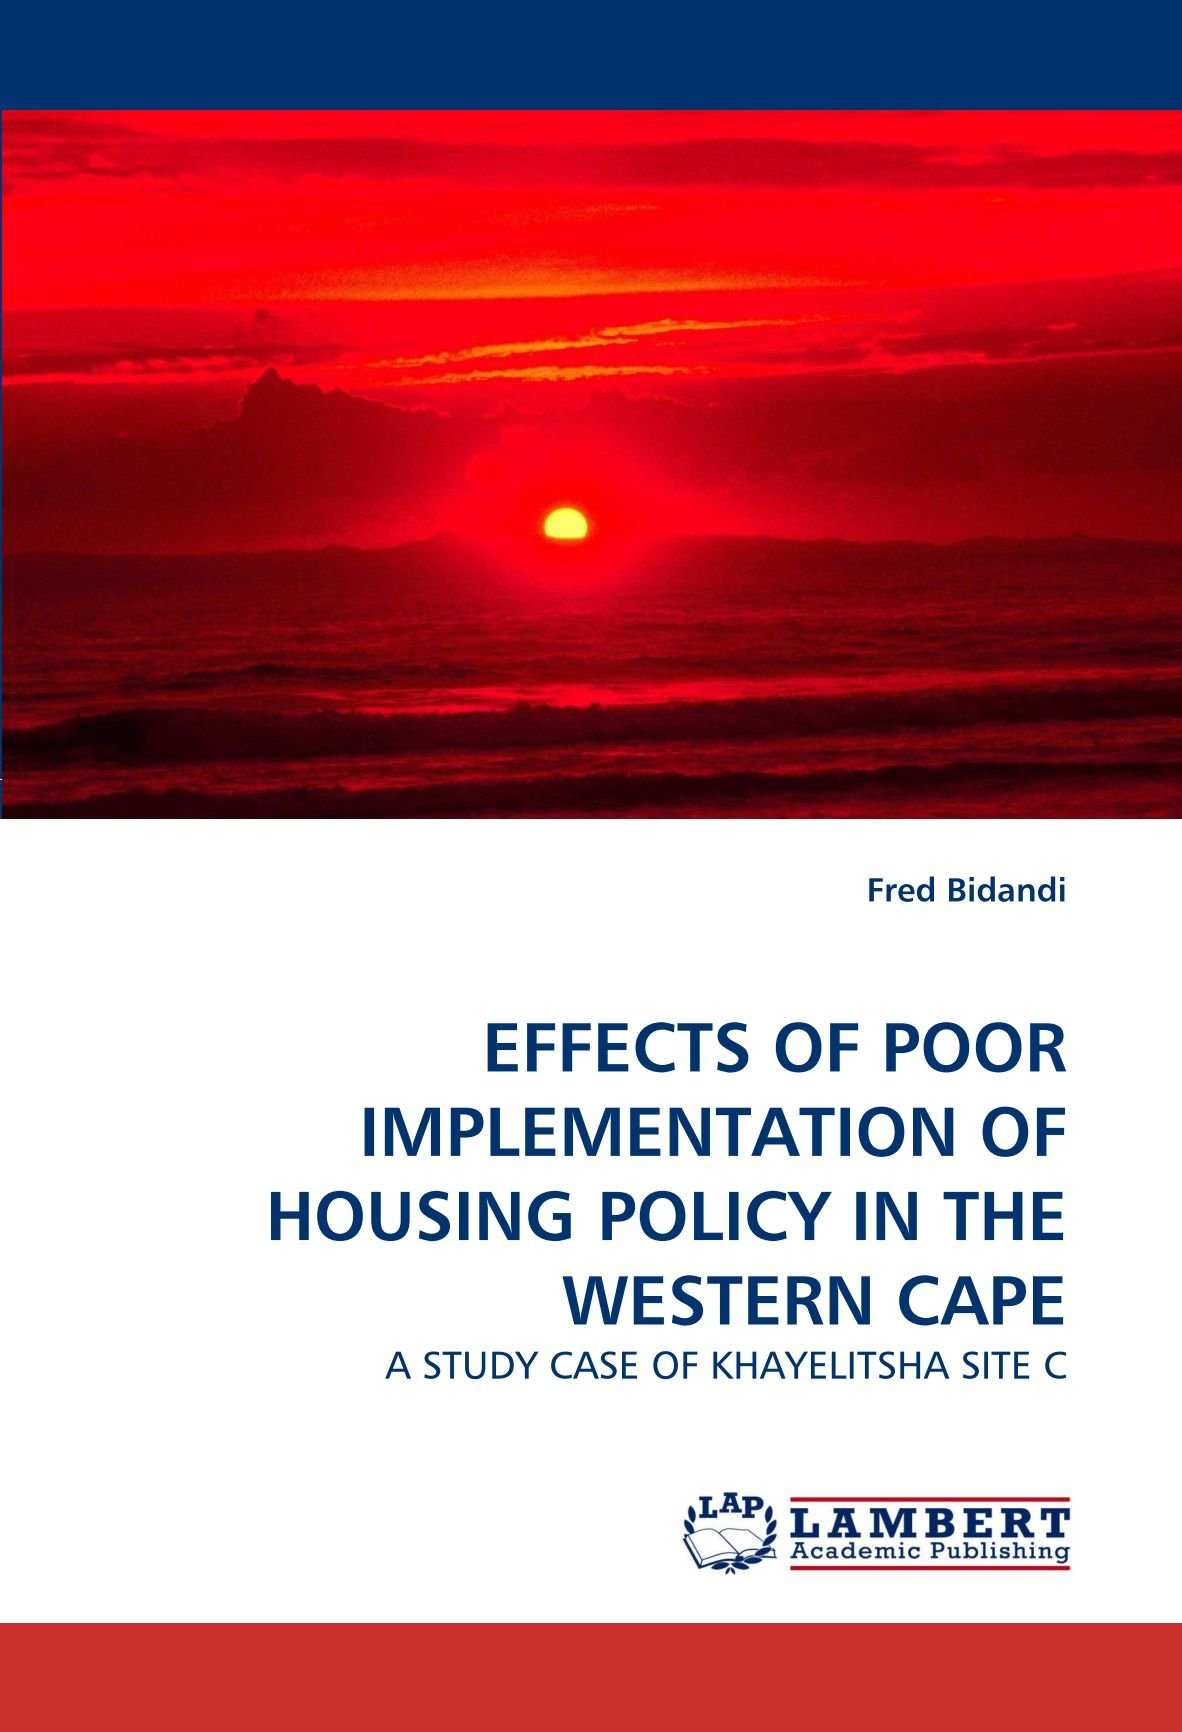 EFFECTS OF POOR IMPLEMENTATION OF HOUSING POLICY IN THE WESTERN CAPE: A STUDY CASE OF KHAYELITSHA SITE C ebook